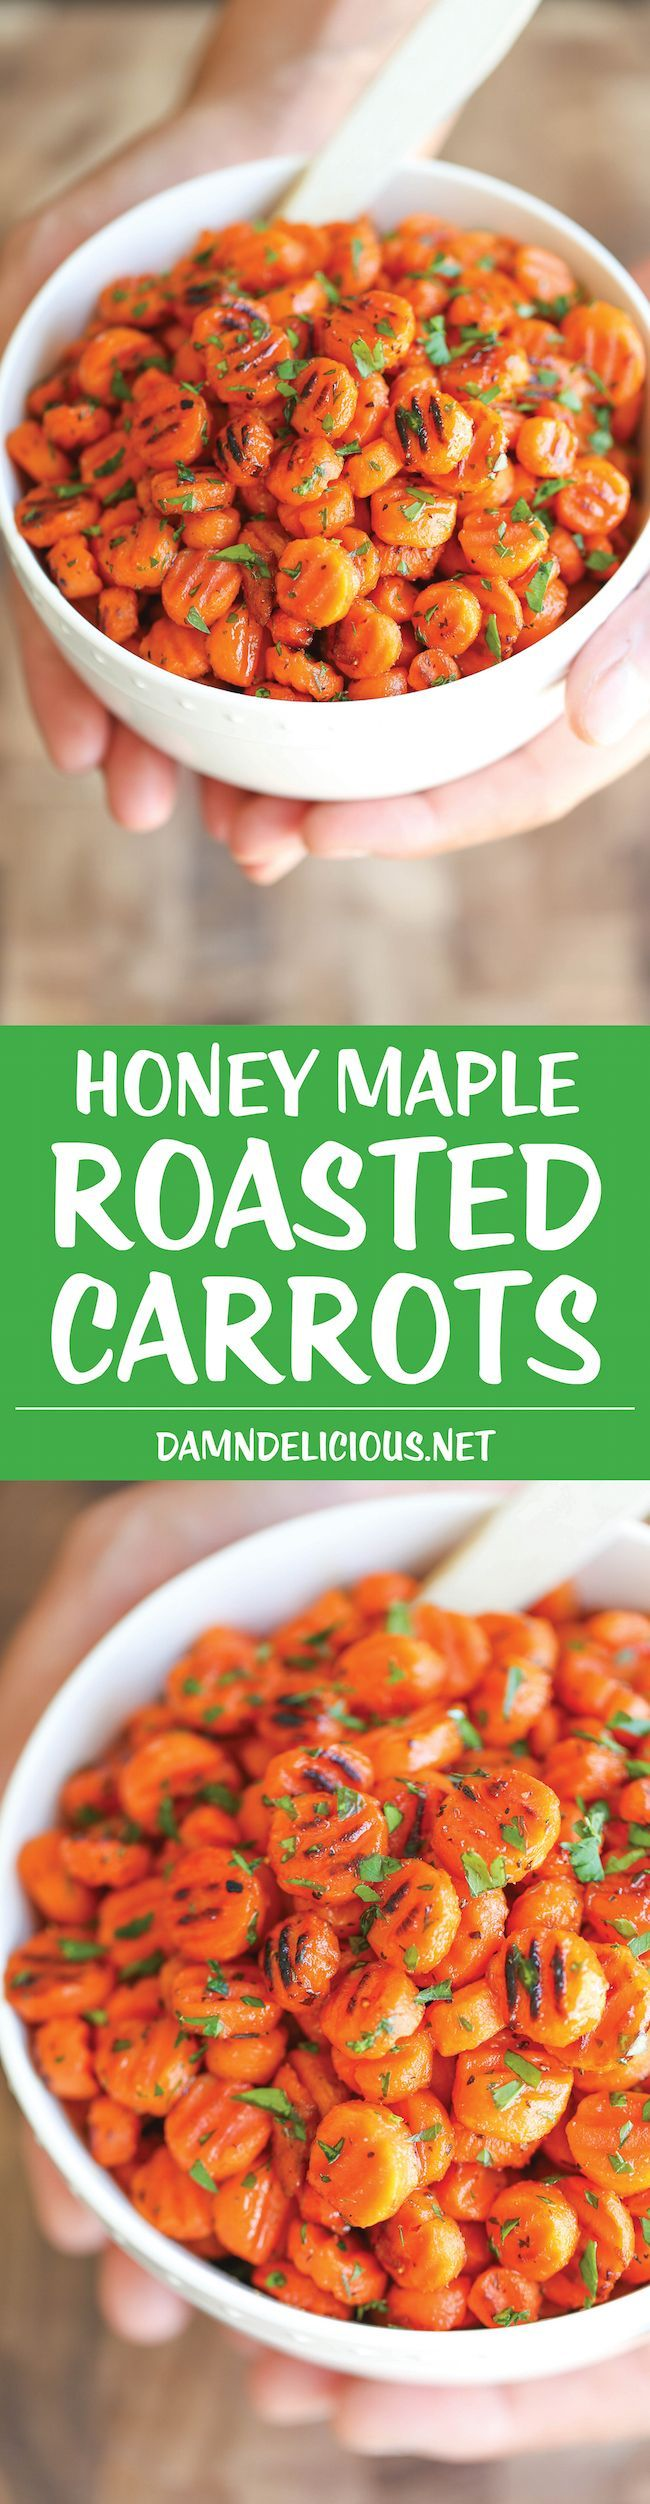 OMG sounds AMAZING! Honey Maple Roasted Carrots - An easy simple side dish to accompany any meal, tossed in olive oil, maple syrup, honey and herbs. Just 5 min prep. That's it!